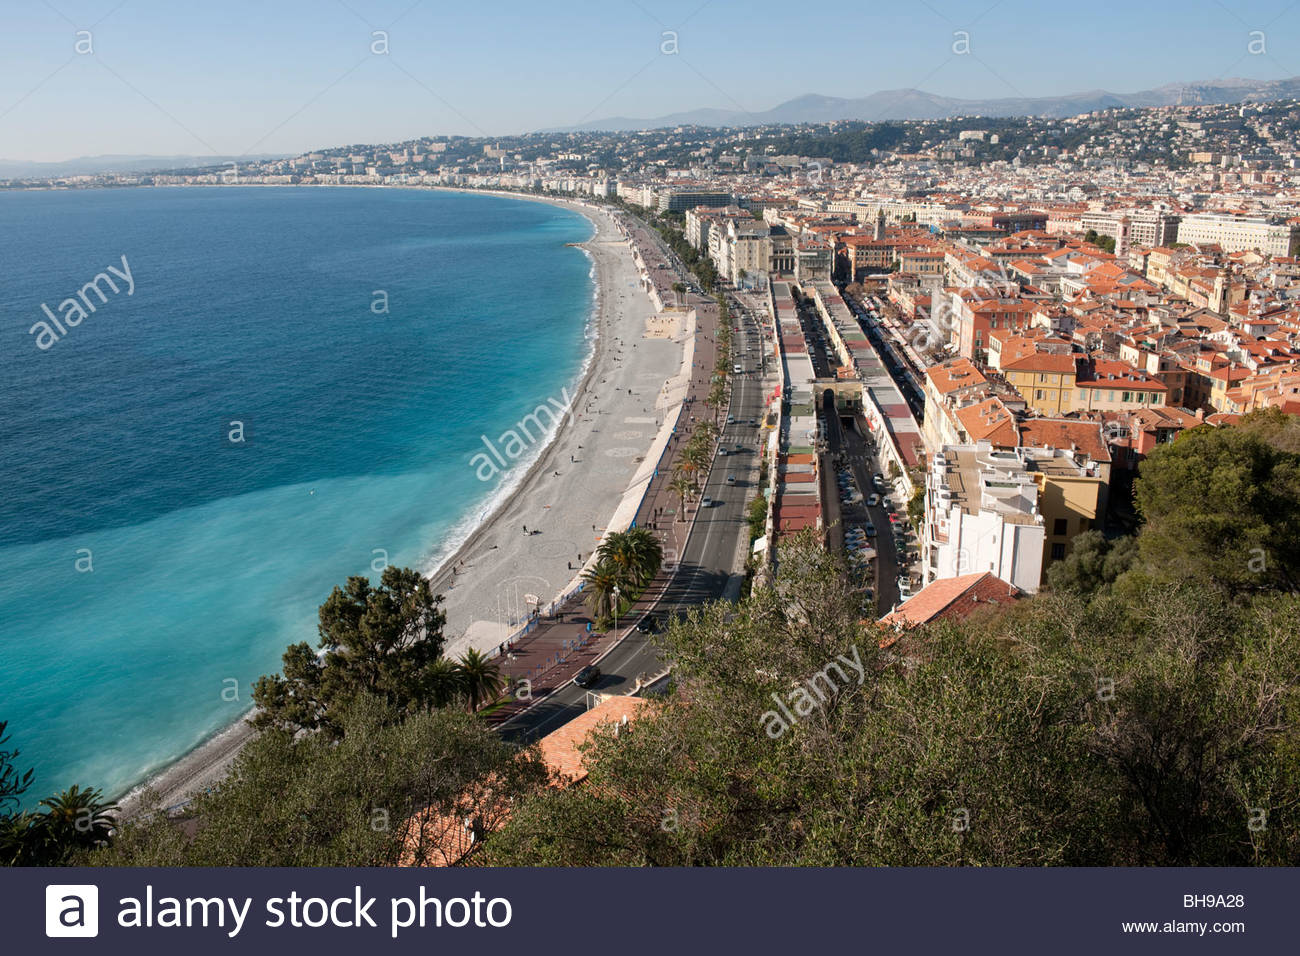 Promenade des Anglais, The Marche aux Fleurs, Baie des Anges and the city of Nice from the Parc de Colline du Chateau - Stock Image